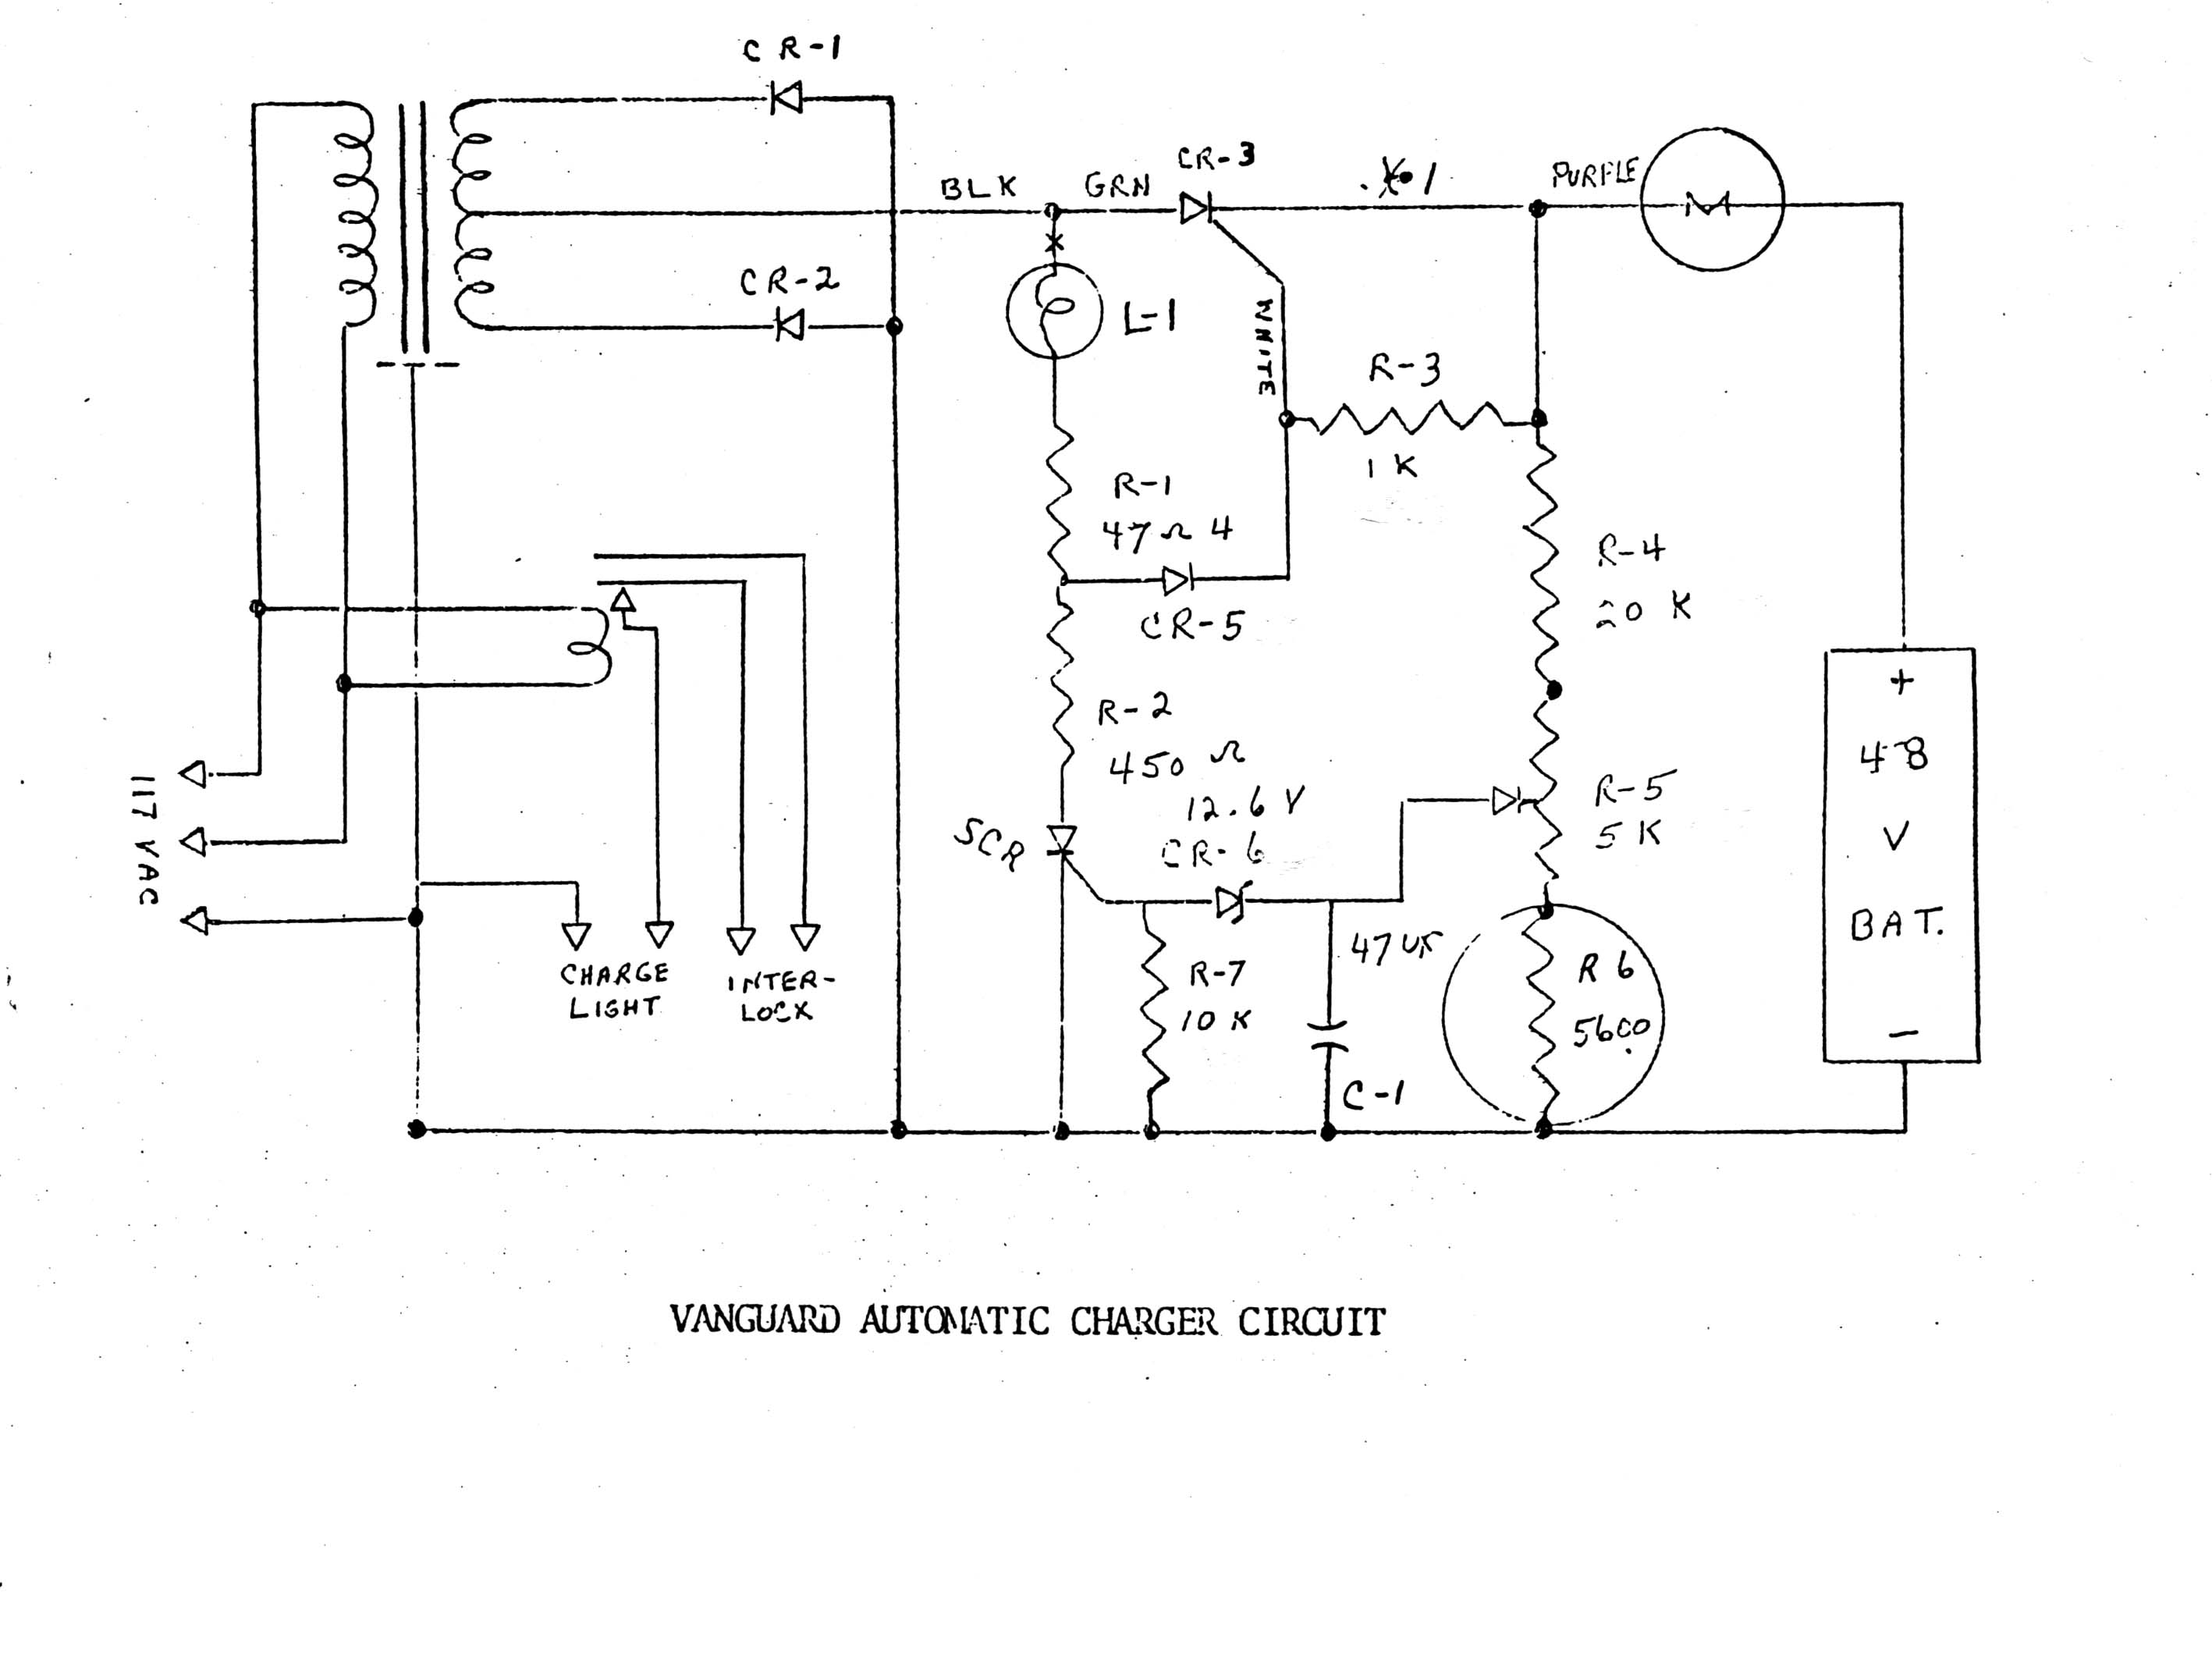 car battery charger schematic diagram